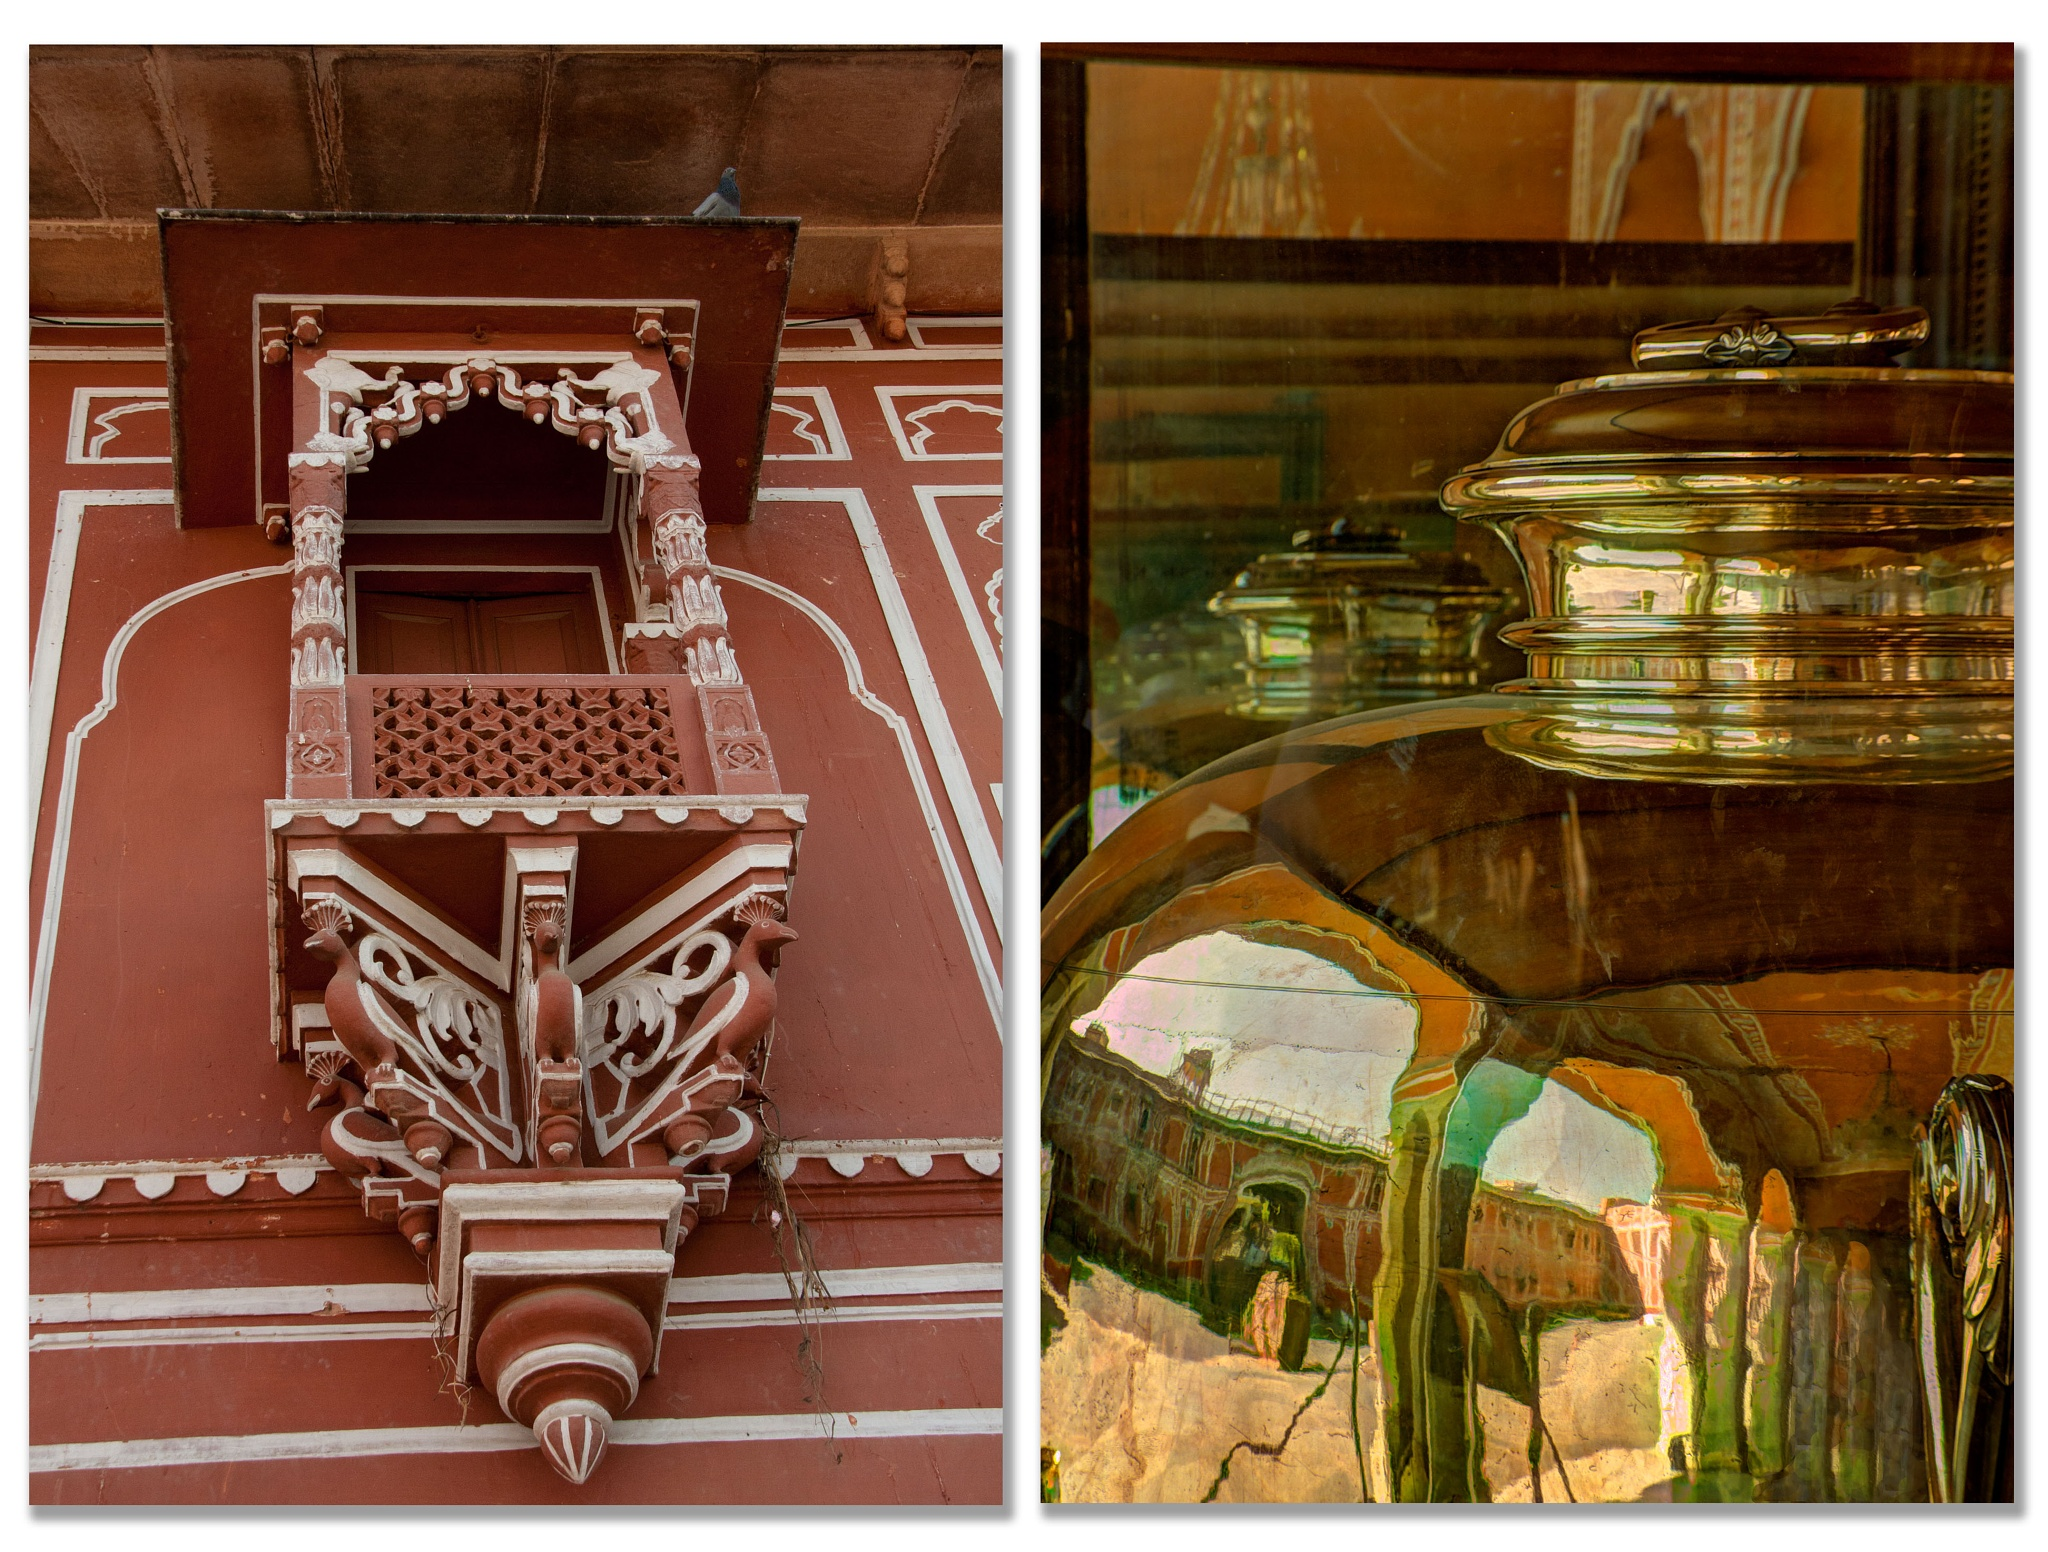 City Palace Jaipur  / Silver Urn by Willpower